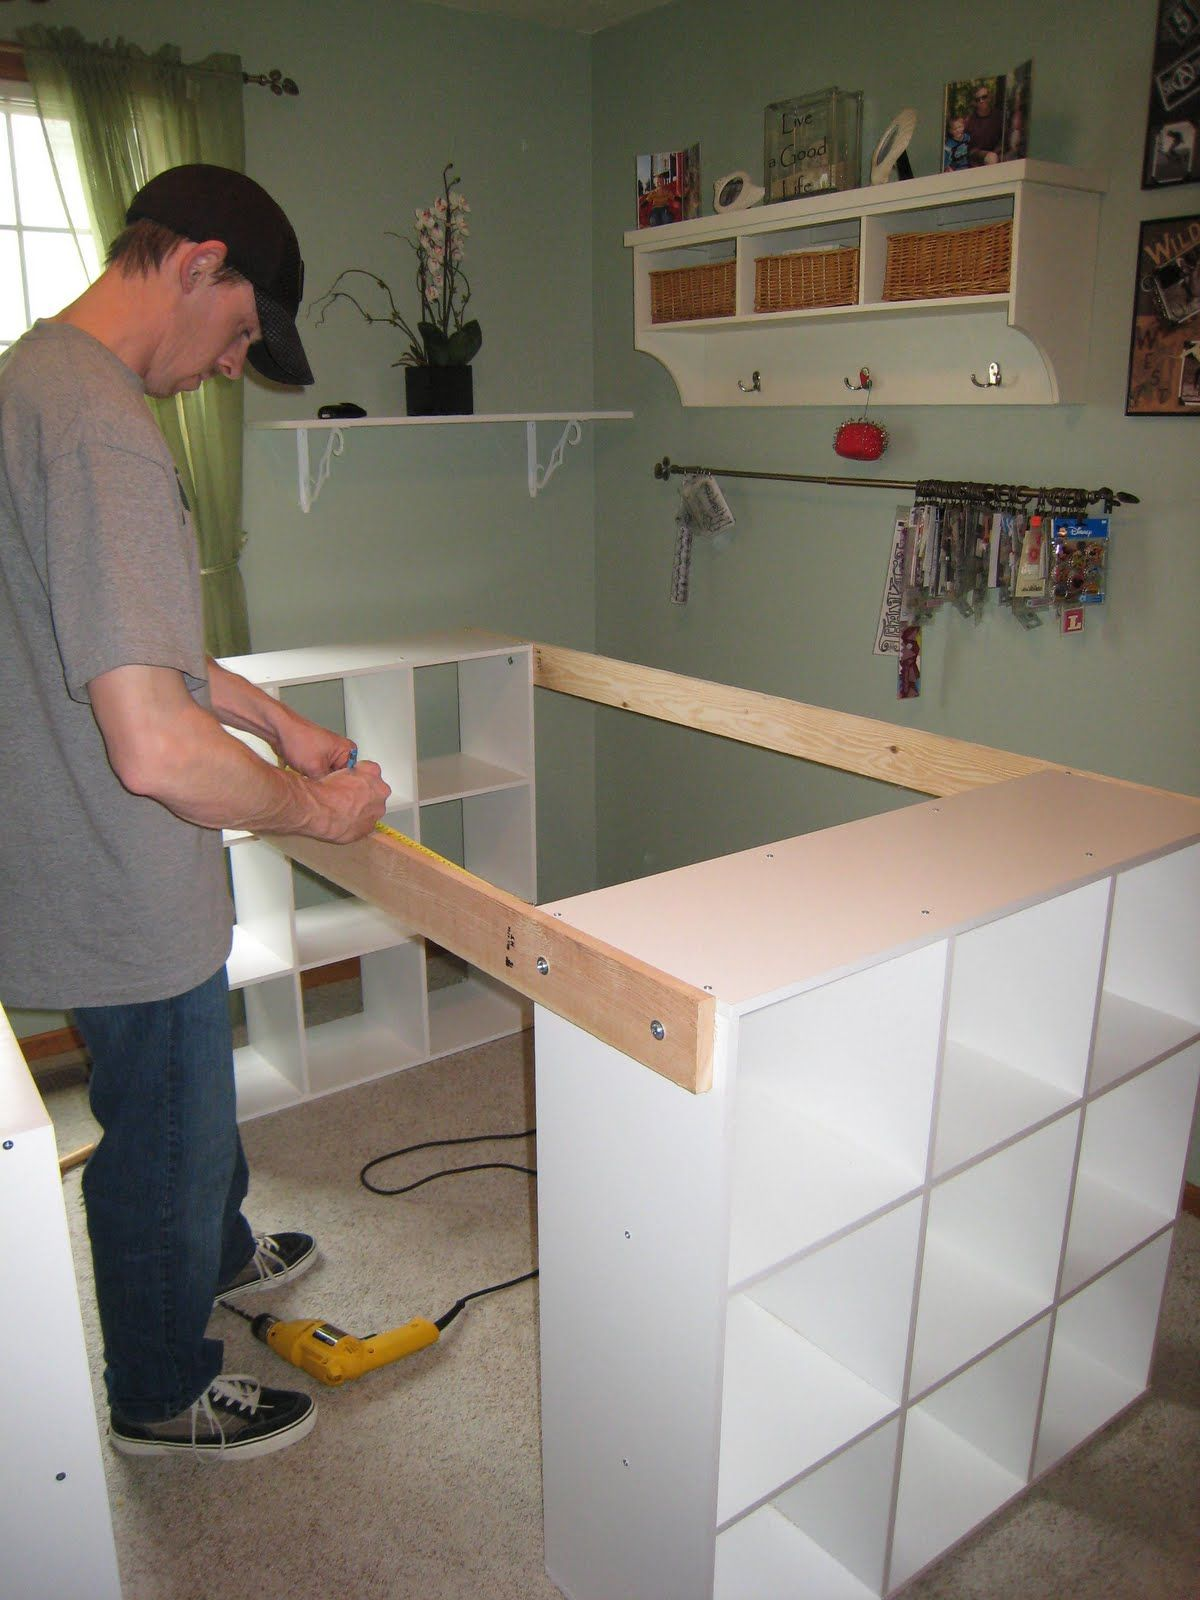 Do it yourself white craft desk for the craft area of a finished do it yourself white craft desk for the craft area of a finished attic solutioingenieria Image collections